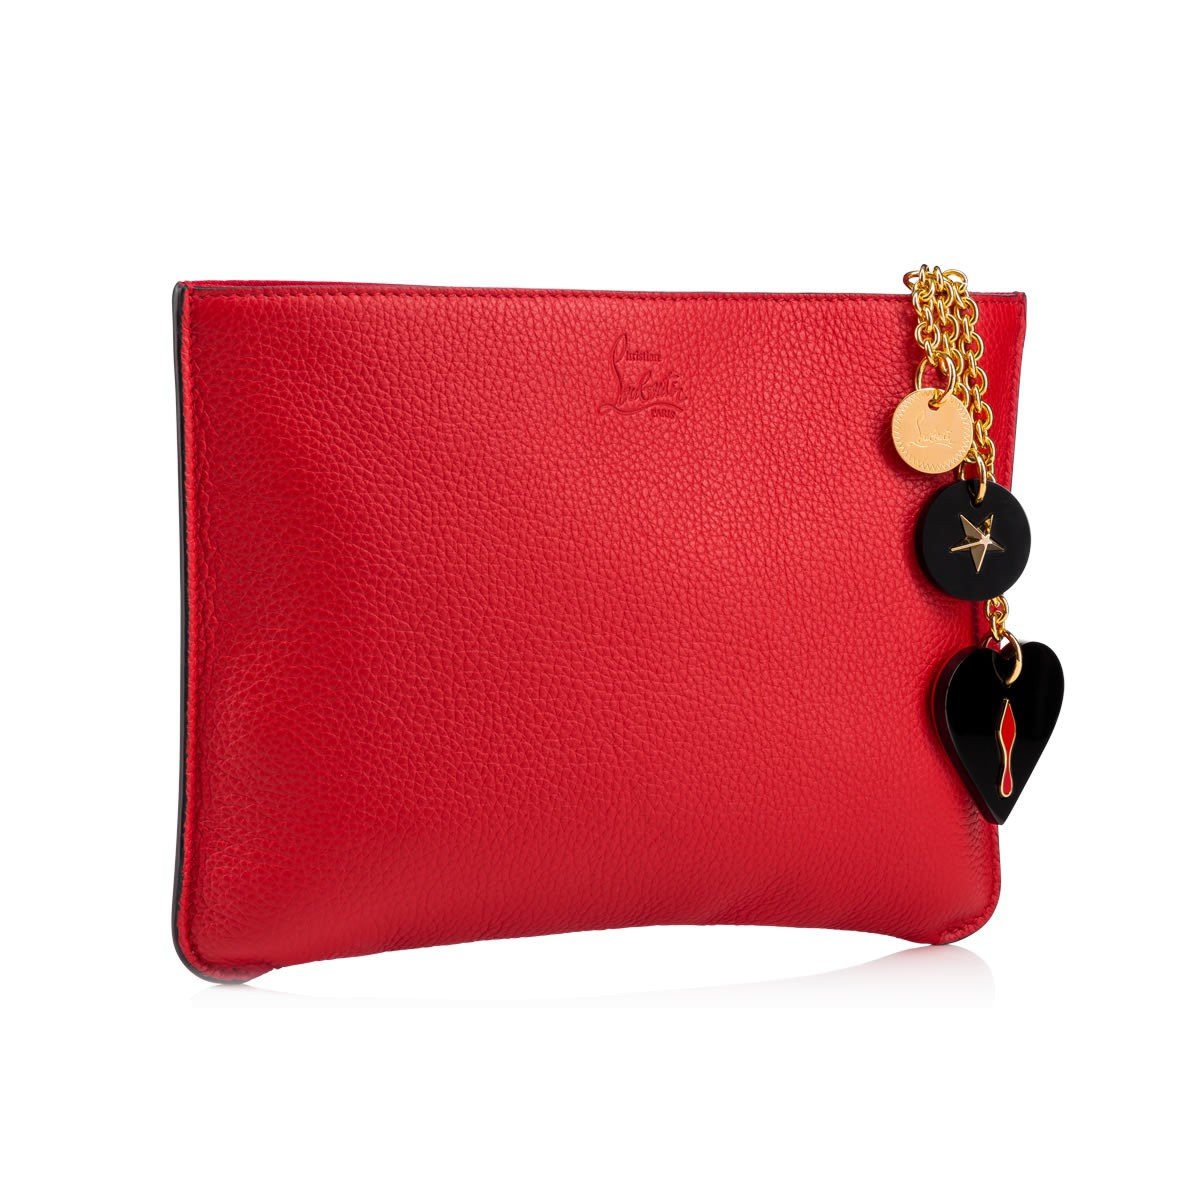 Accessories - Loubicute Small Pouch - Christian Louboutin